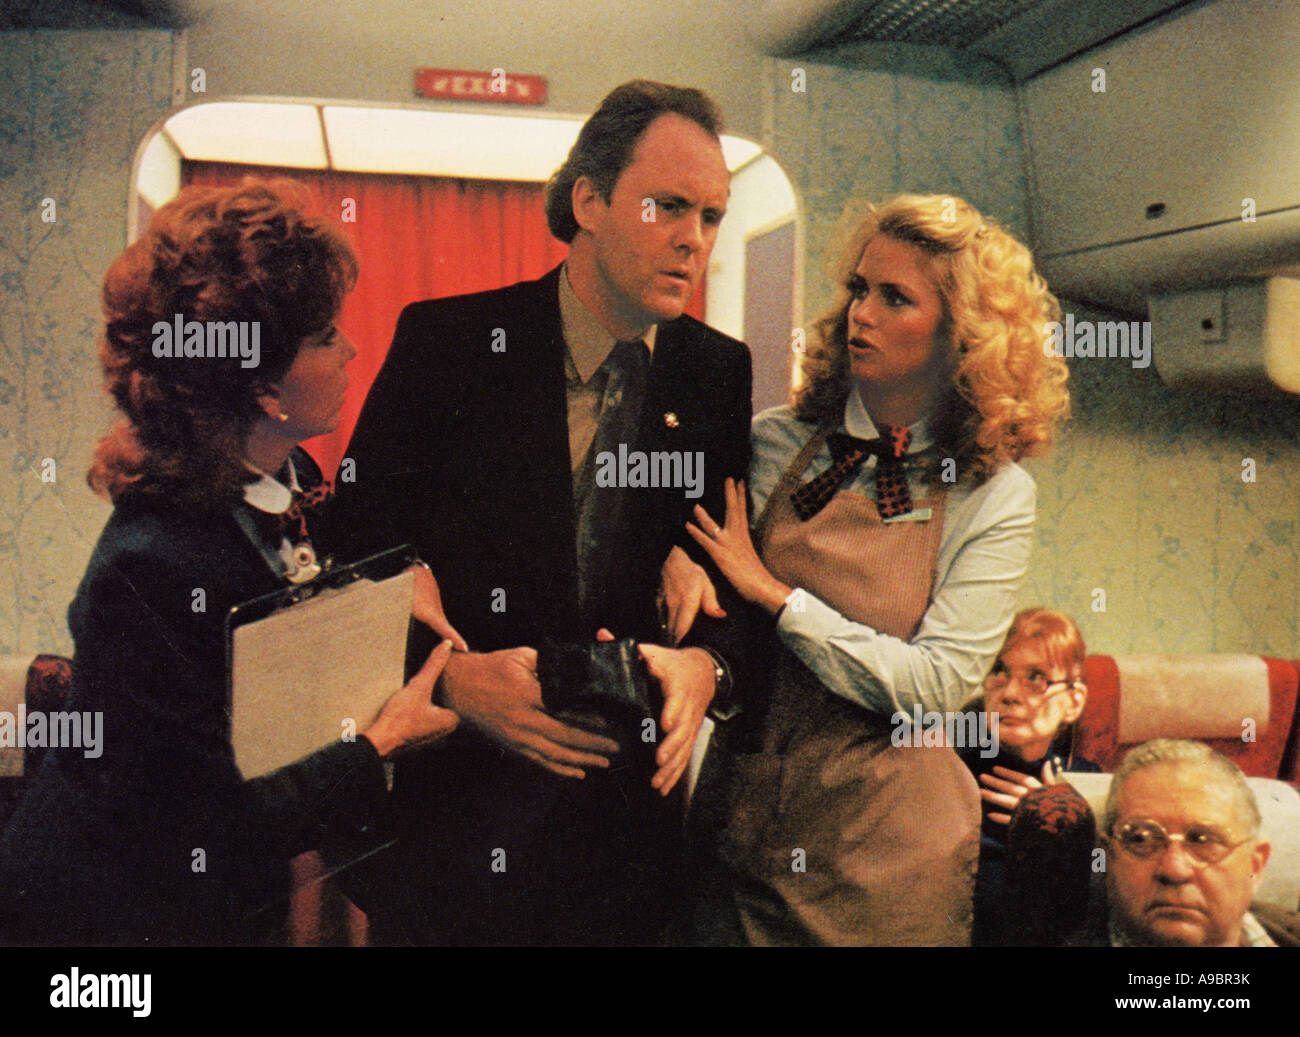 TWILIGHT ZONE : THE MOVIE - 1983 Warner film with Dan Akroyd - Stock Image